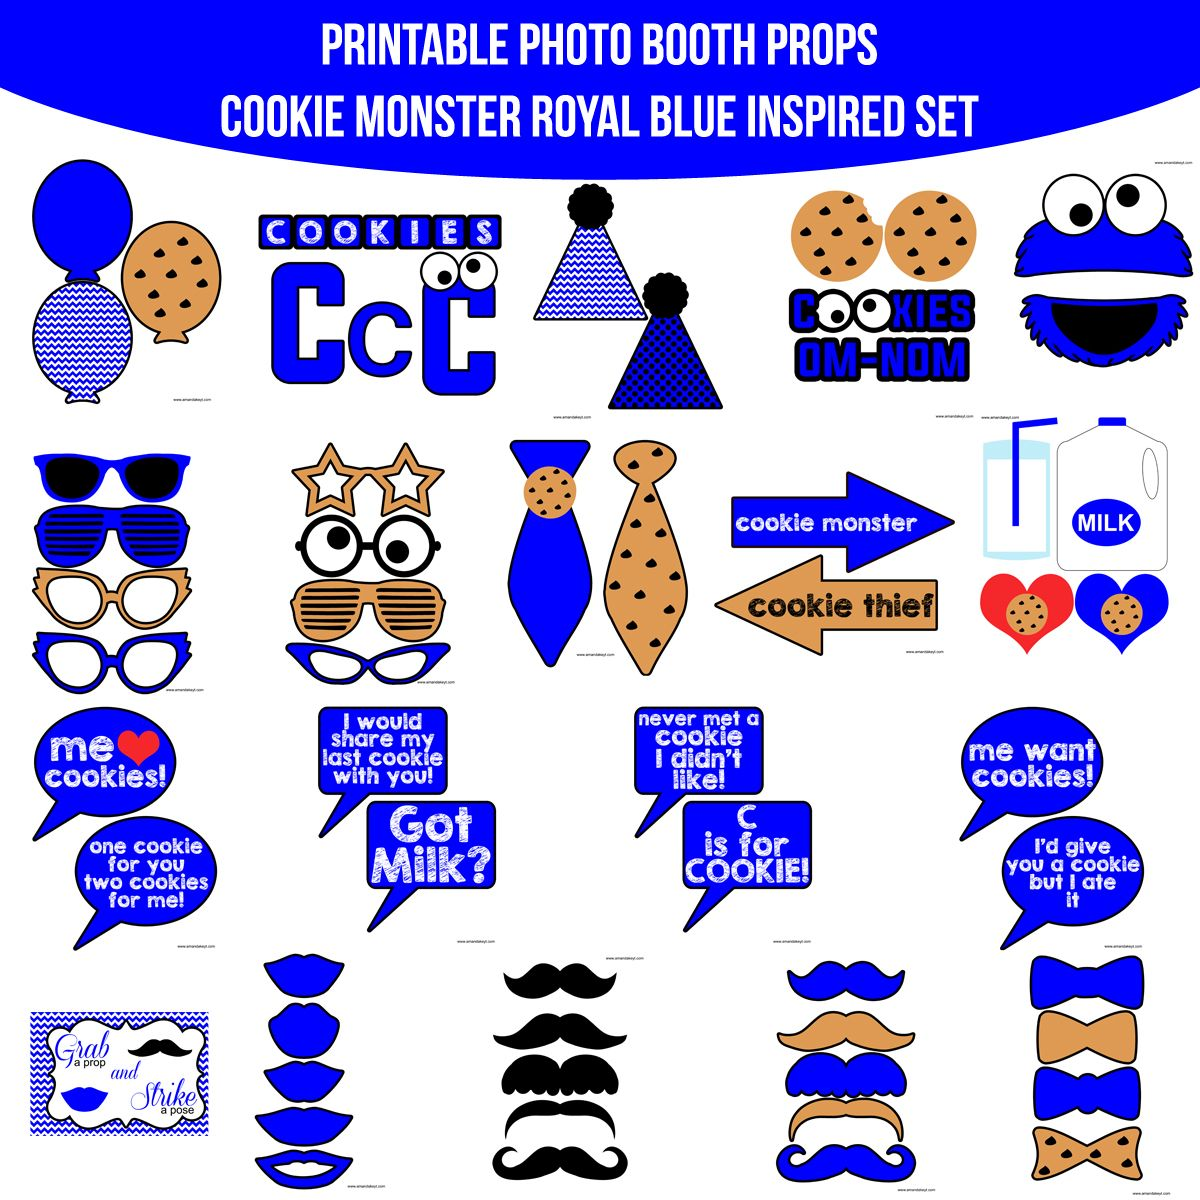 Instant Download Royal Blue Cookie Monster Inspired Printable Photo Booth Prop Set — Amanda Keyt DIY Photo Booth Props & More!